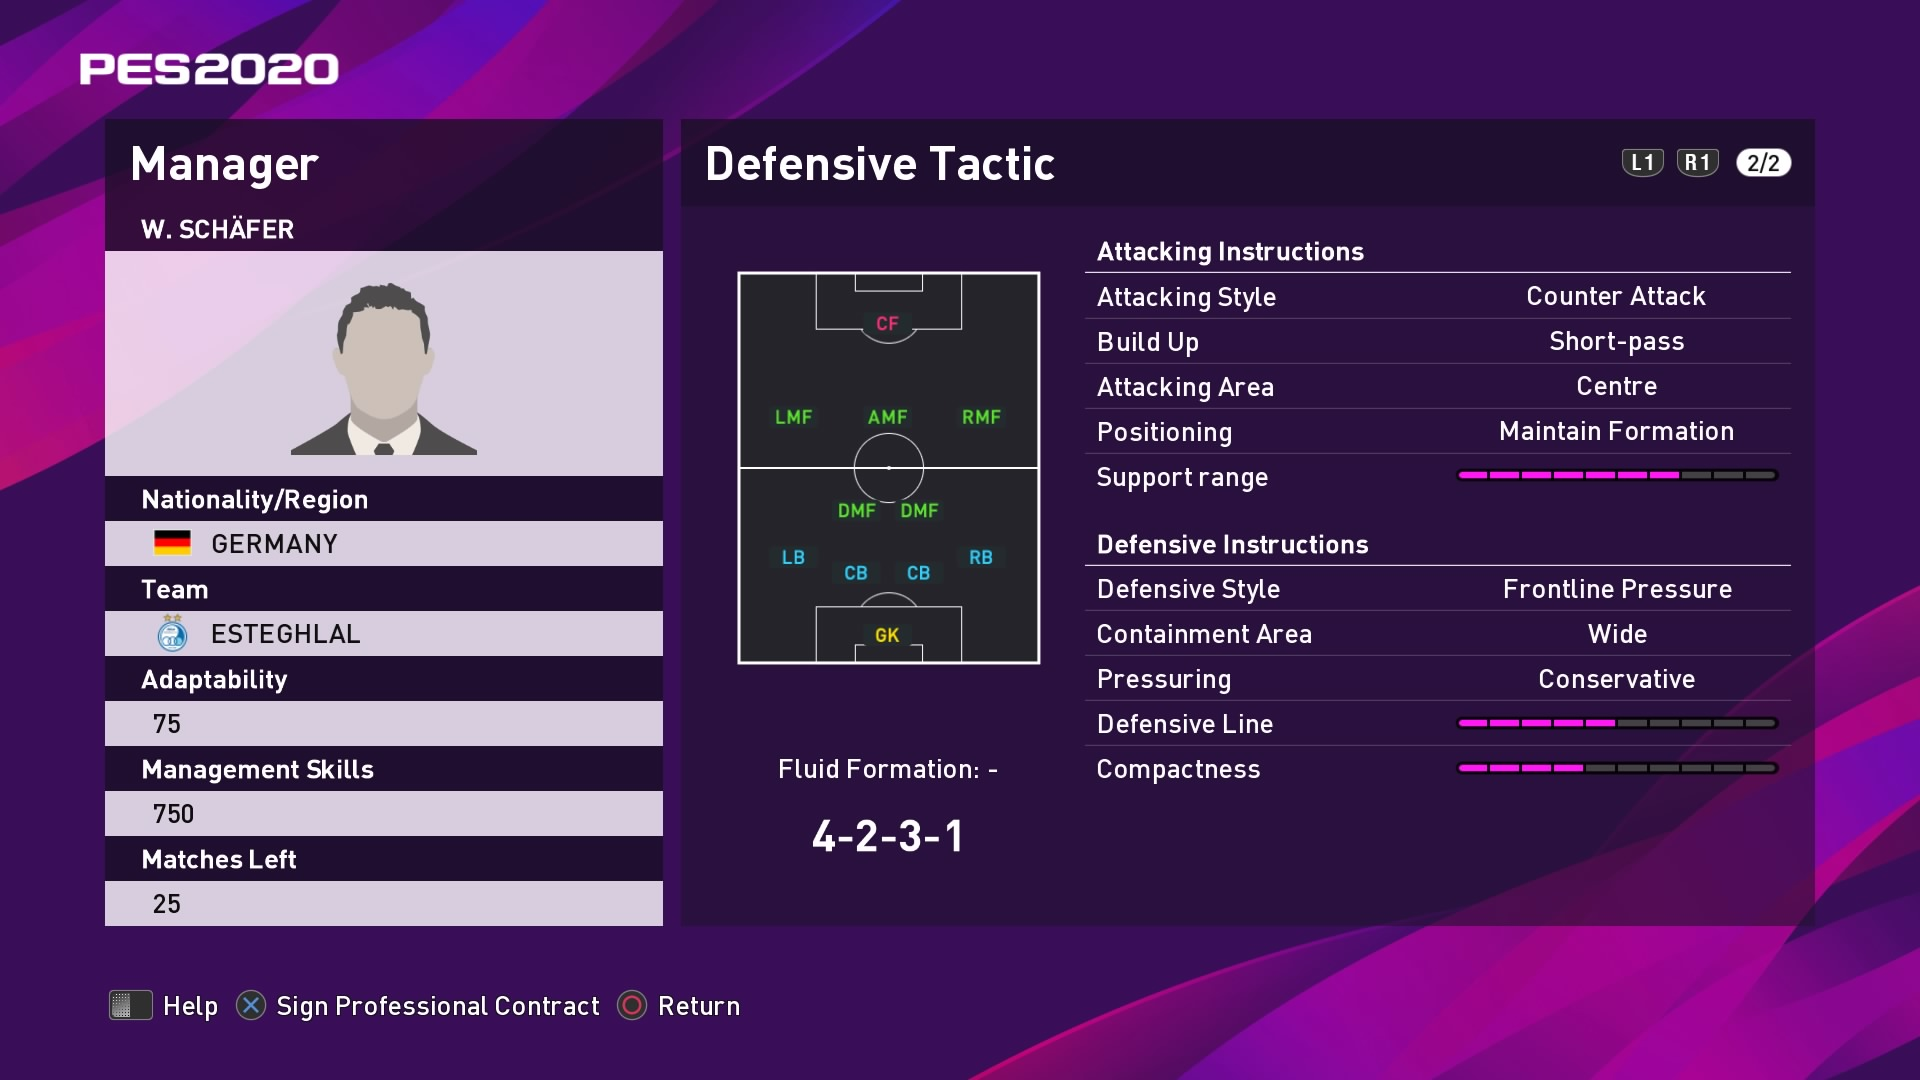 W. Schäfer (Winfried Schäfer) Defensive Tactic in PES 2020 myClub